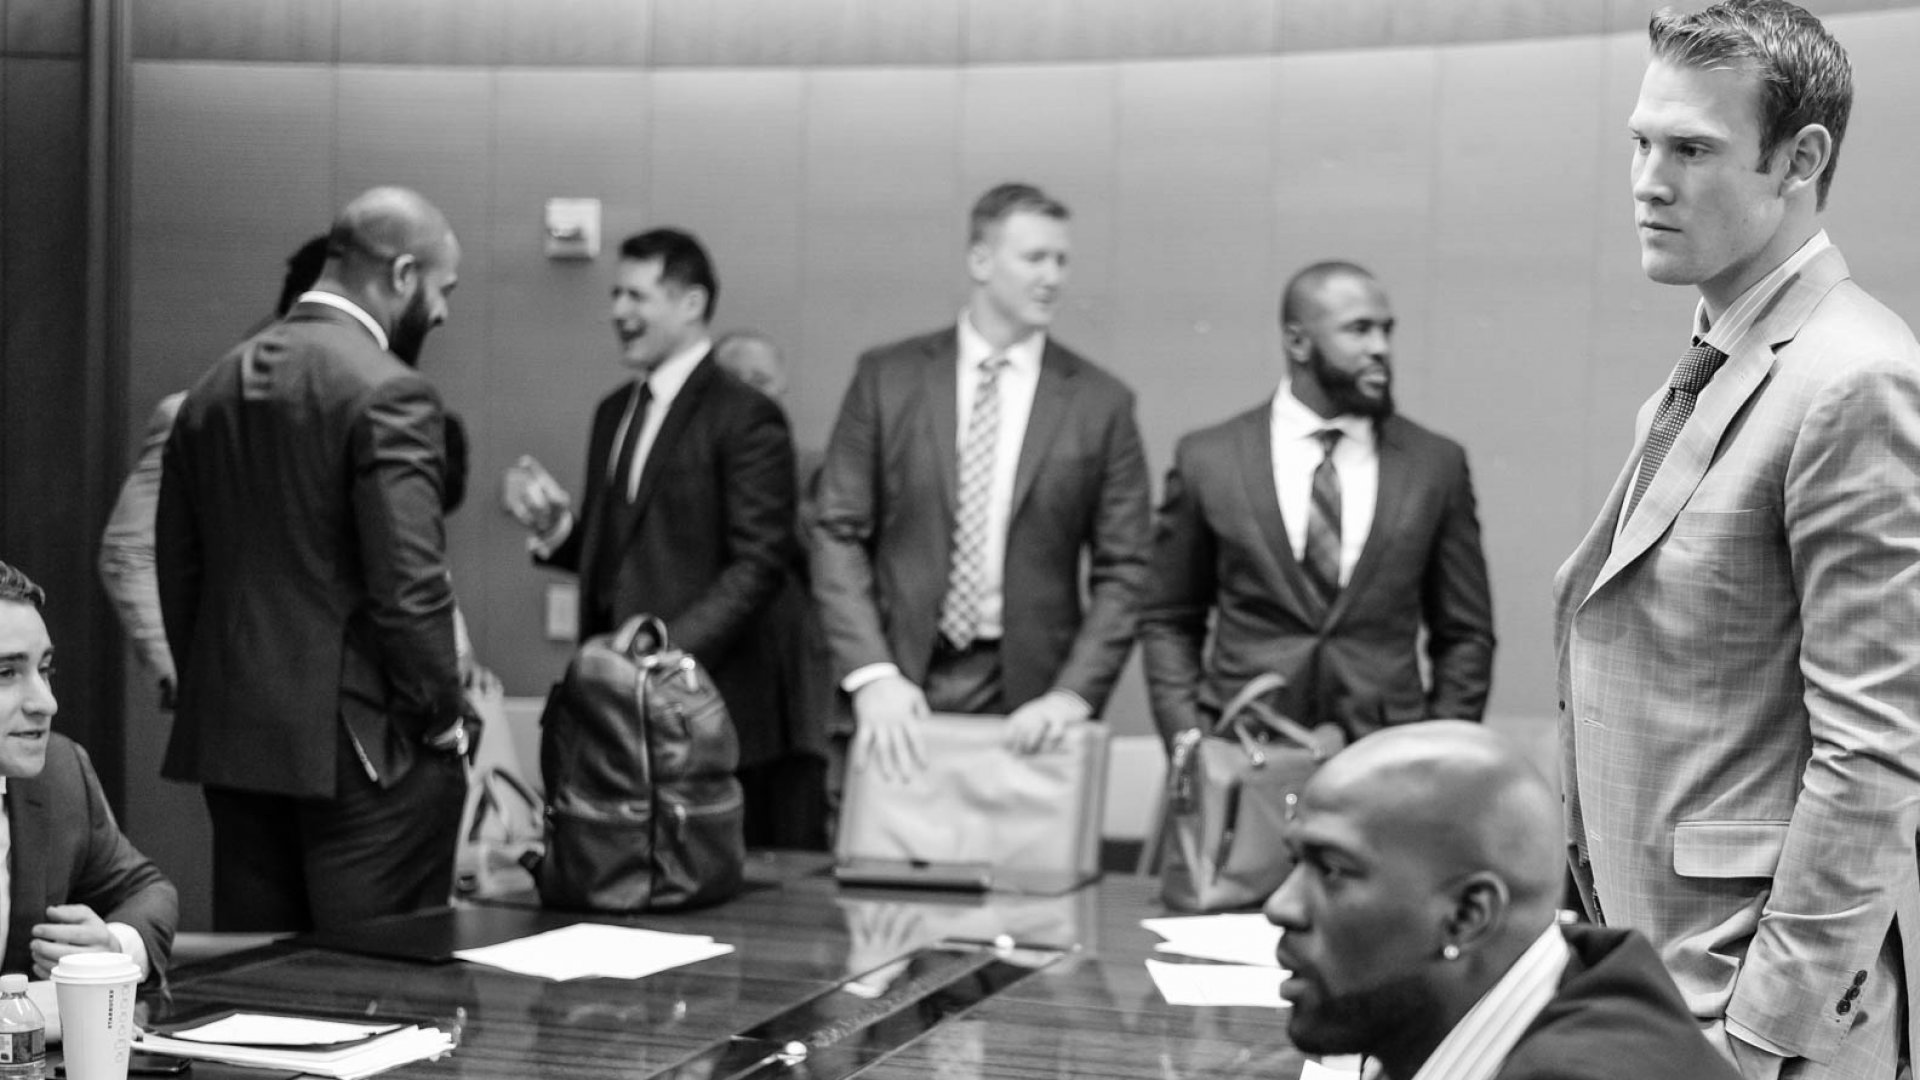 Members of the Miami Dolphins in New York City for the Dolphins player business combine.